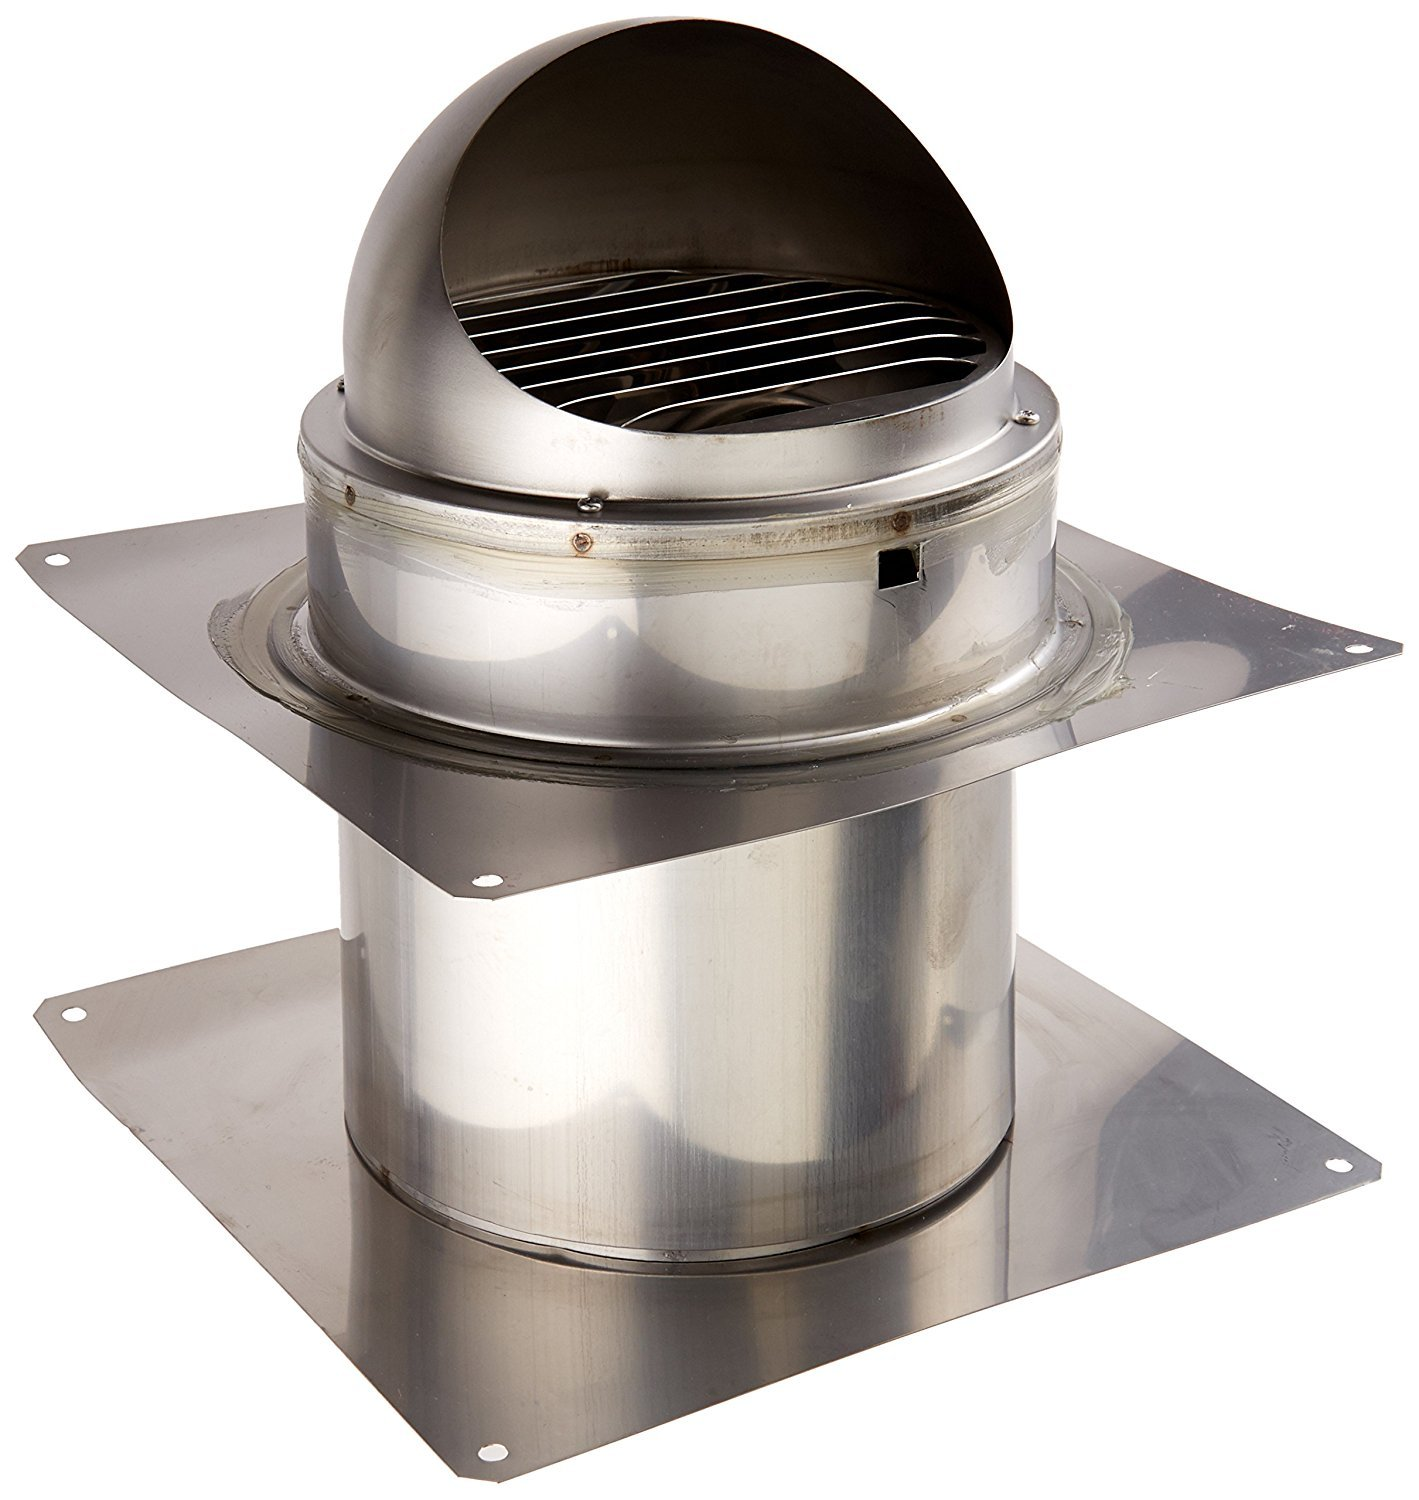 Noritz WT3-H-6 3-Inch Stainless Steel Wall Thimble for Regular Wall